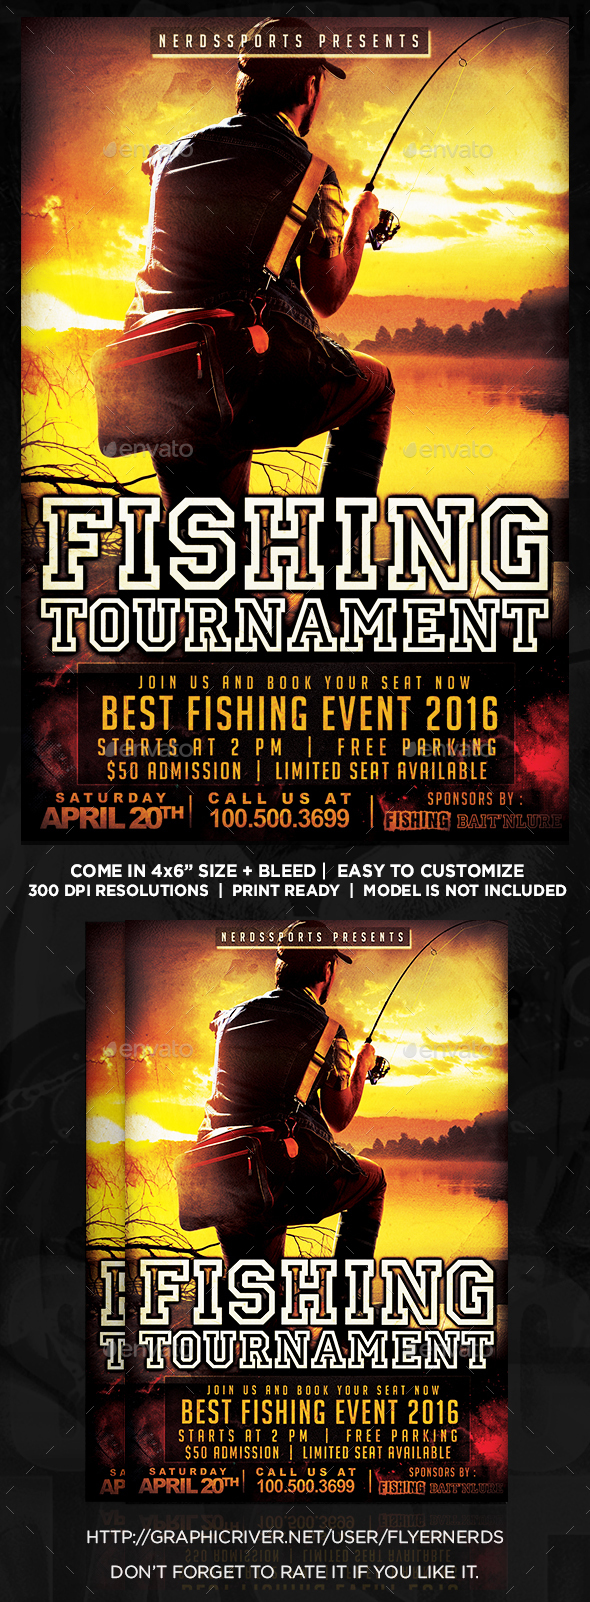 Fishing Tournament Sports Flyer - Sports Events